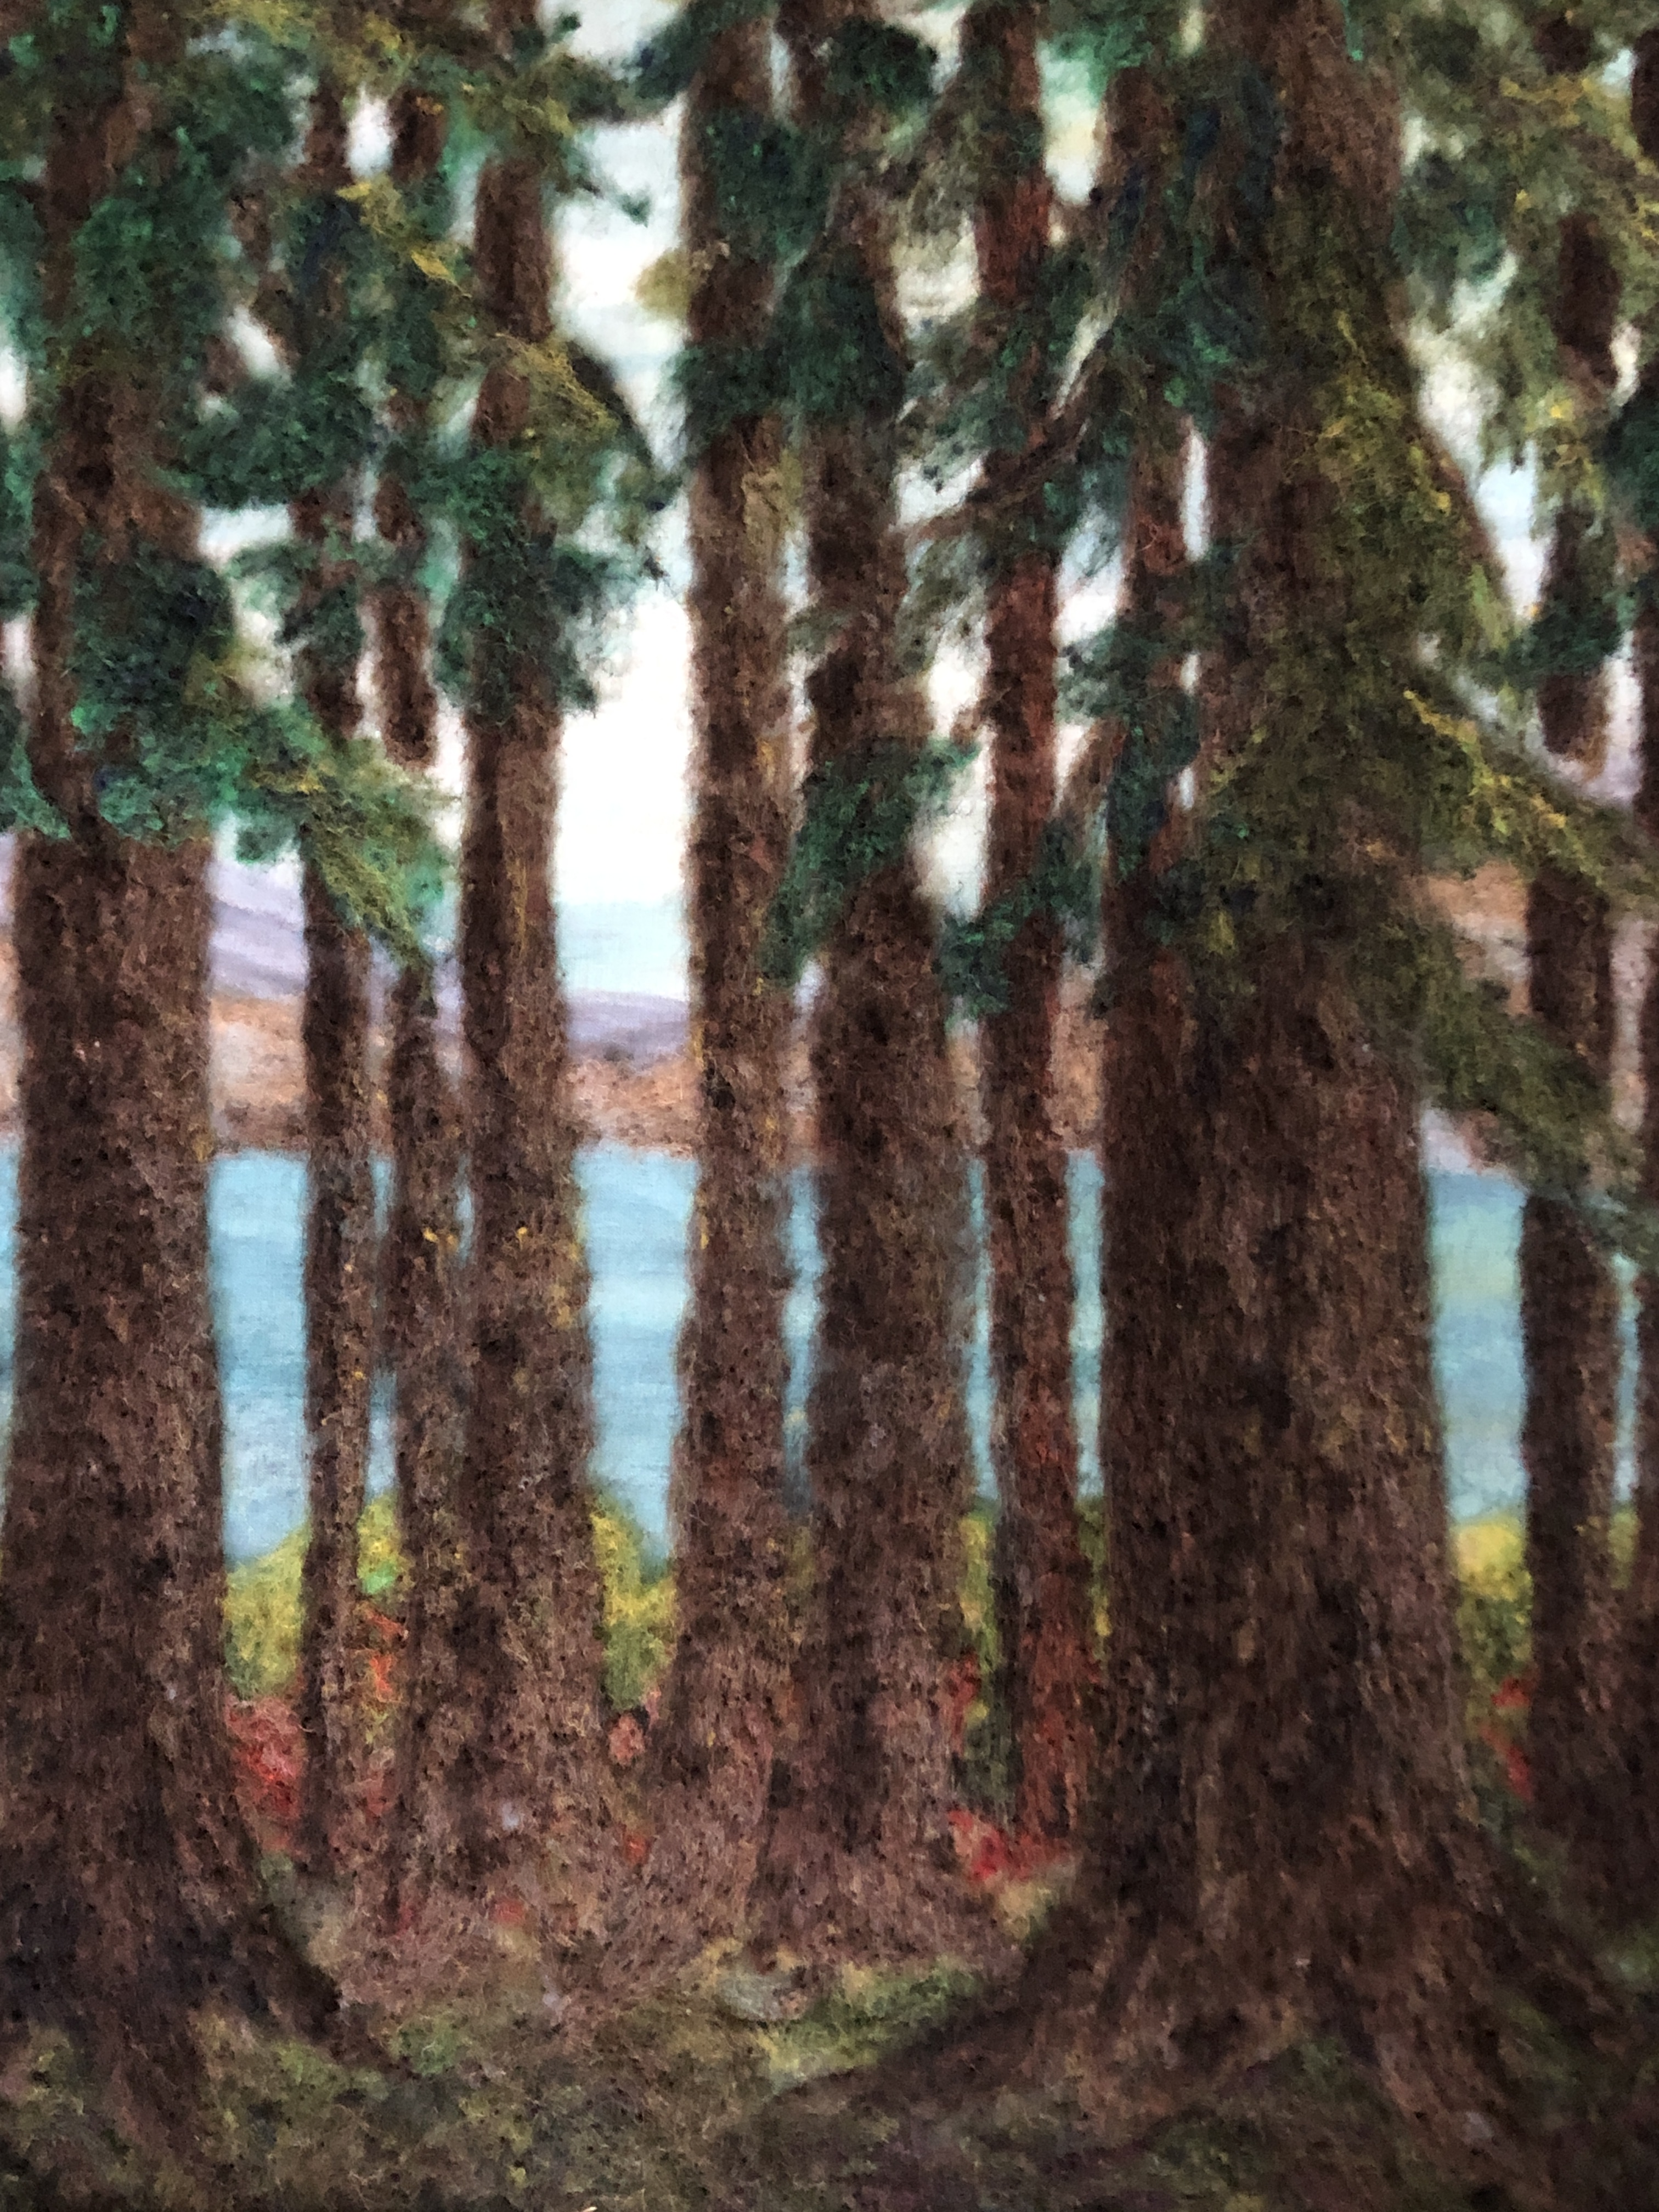 Felt rendering of forest scene with water in the background.